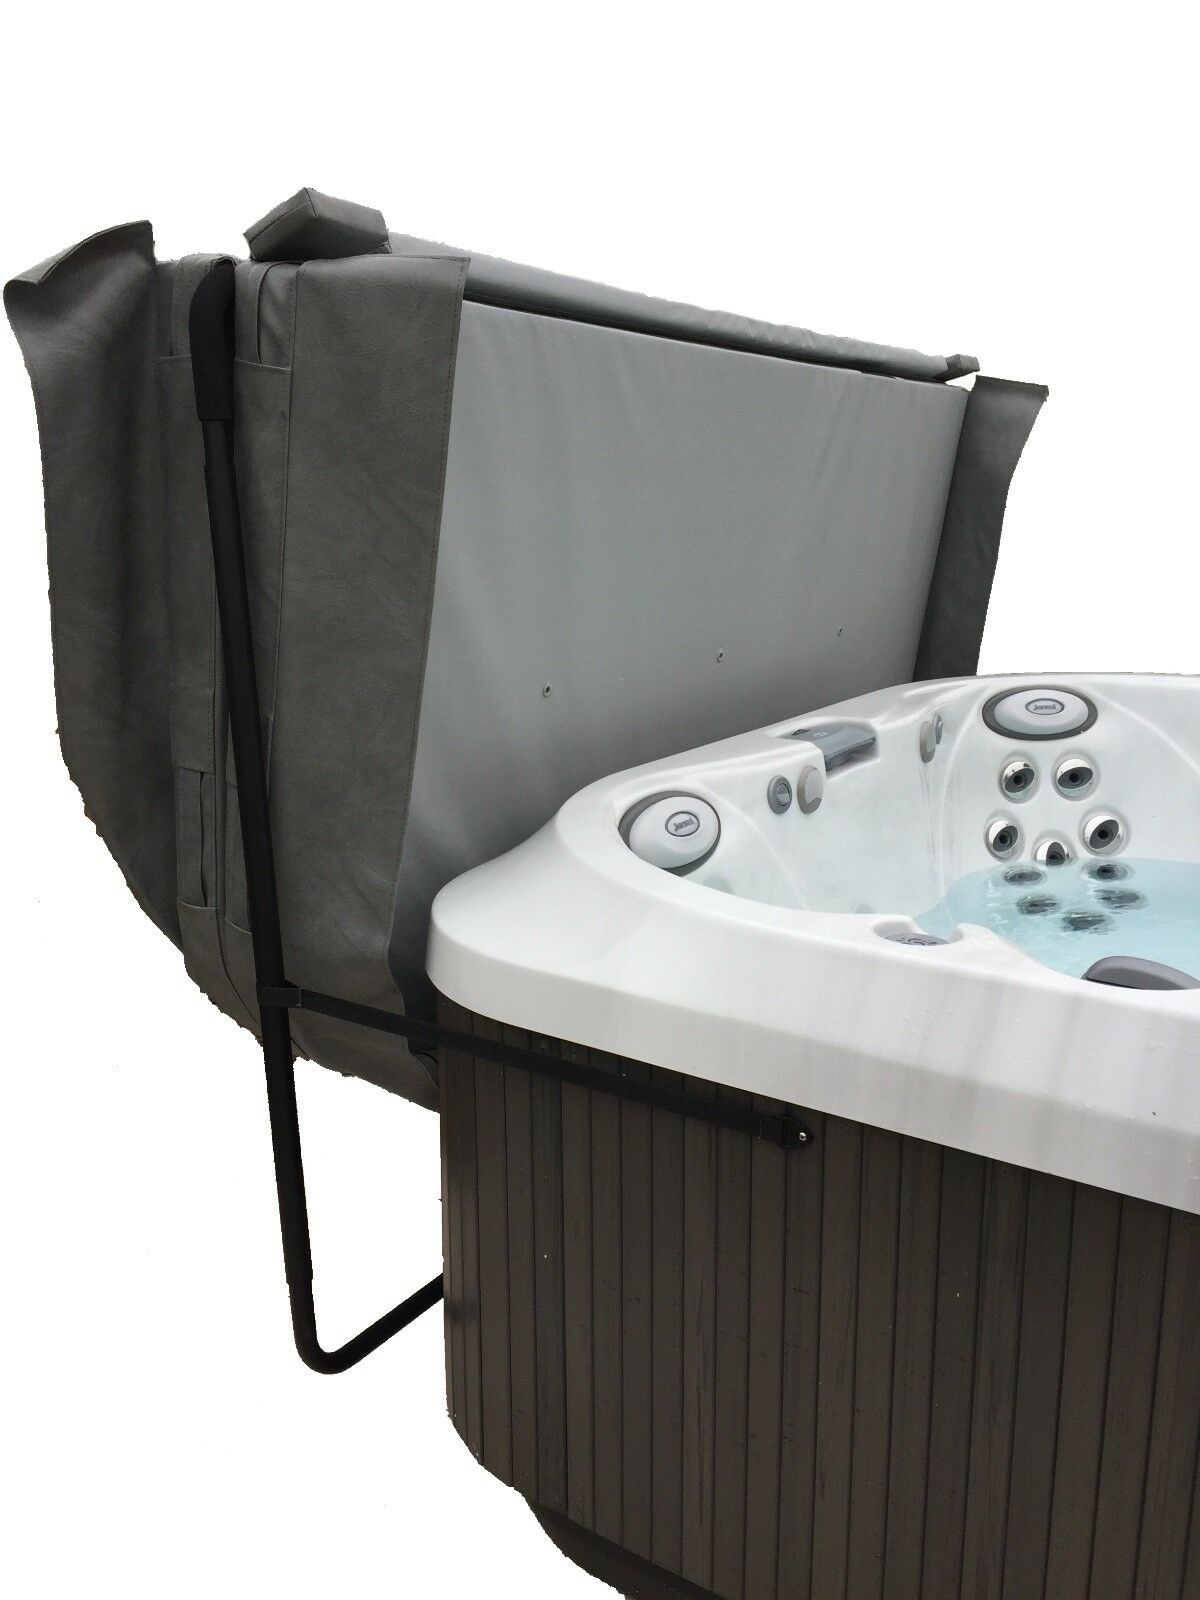 HAPPY HOT TUBS Spa Cover Lifter Covermate Easy Cover Lifter Caddy ...